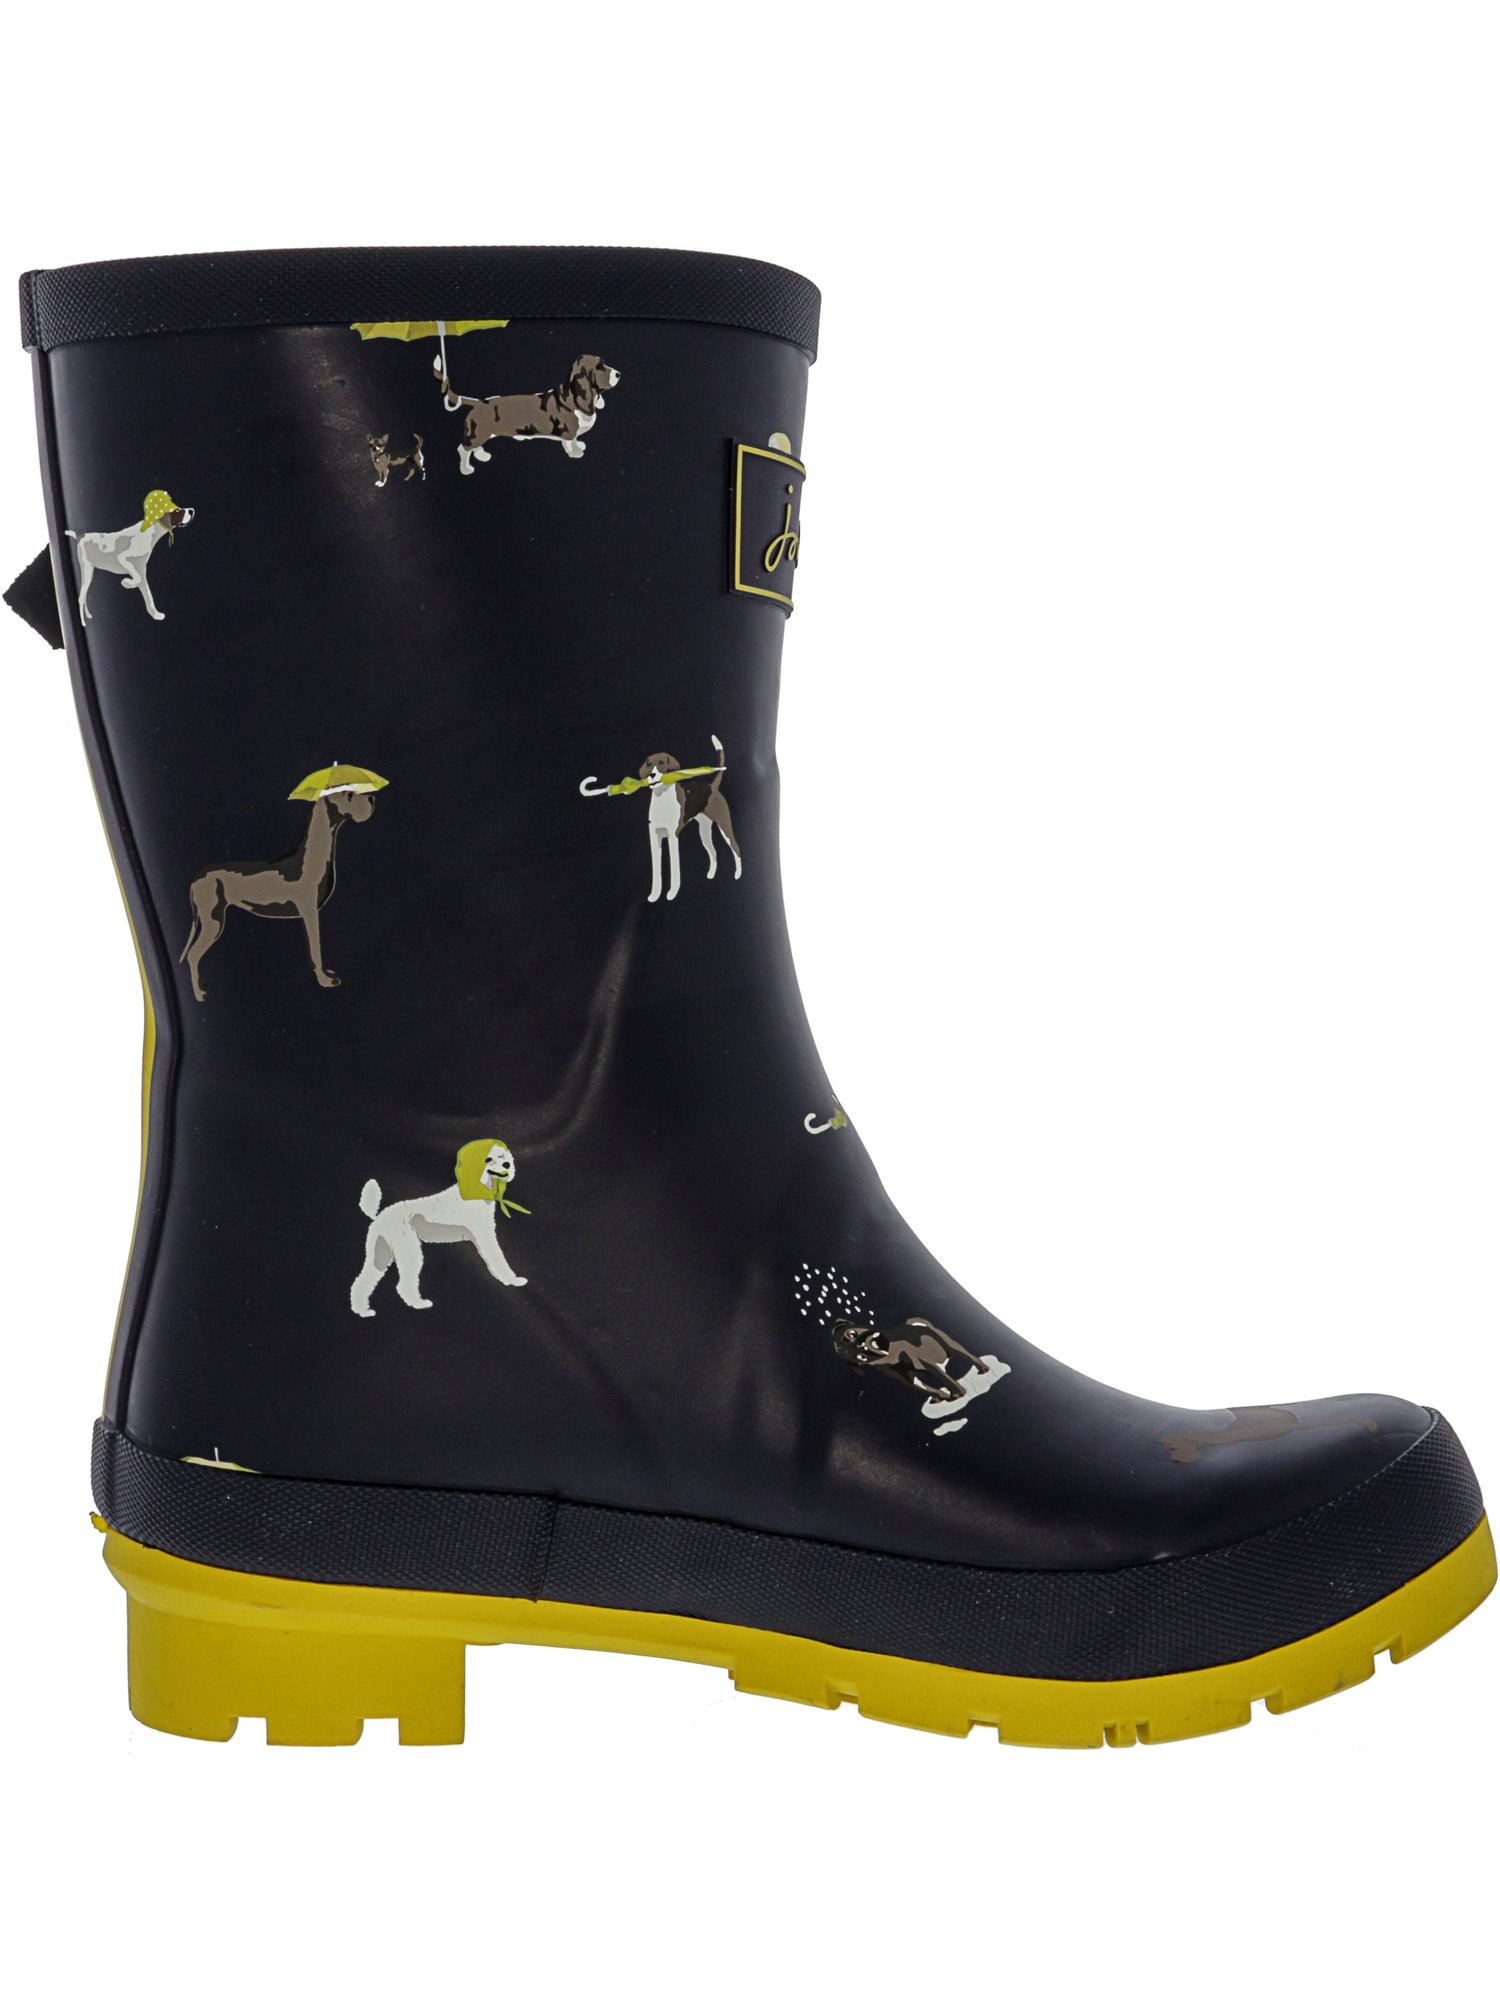 Joules Women's Molly Welly Black Clematis Knee-High Rubber Rain Boot - 6M